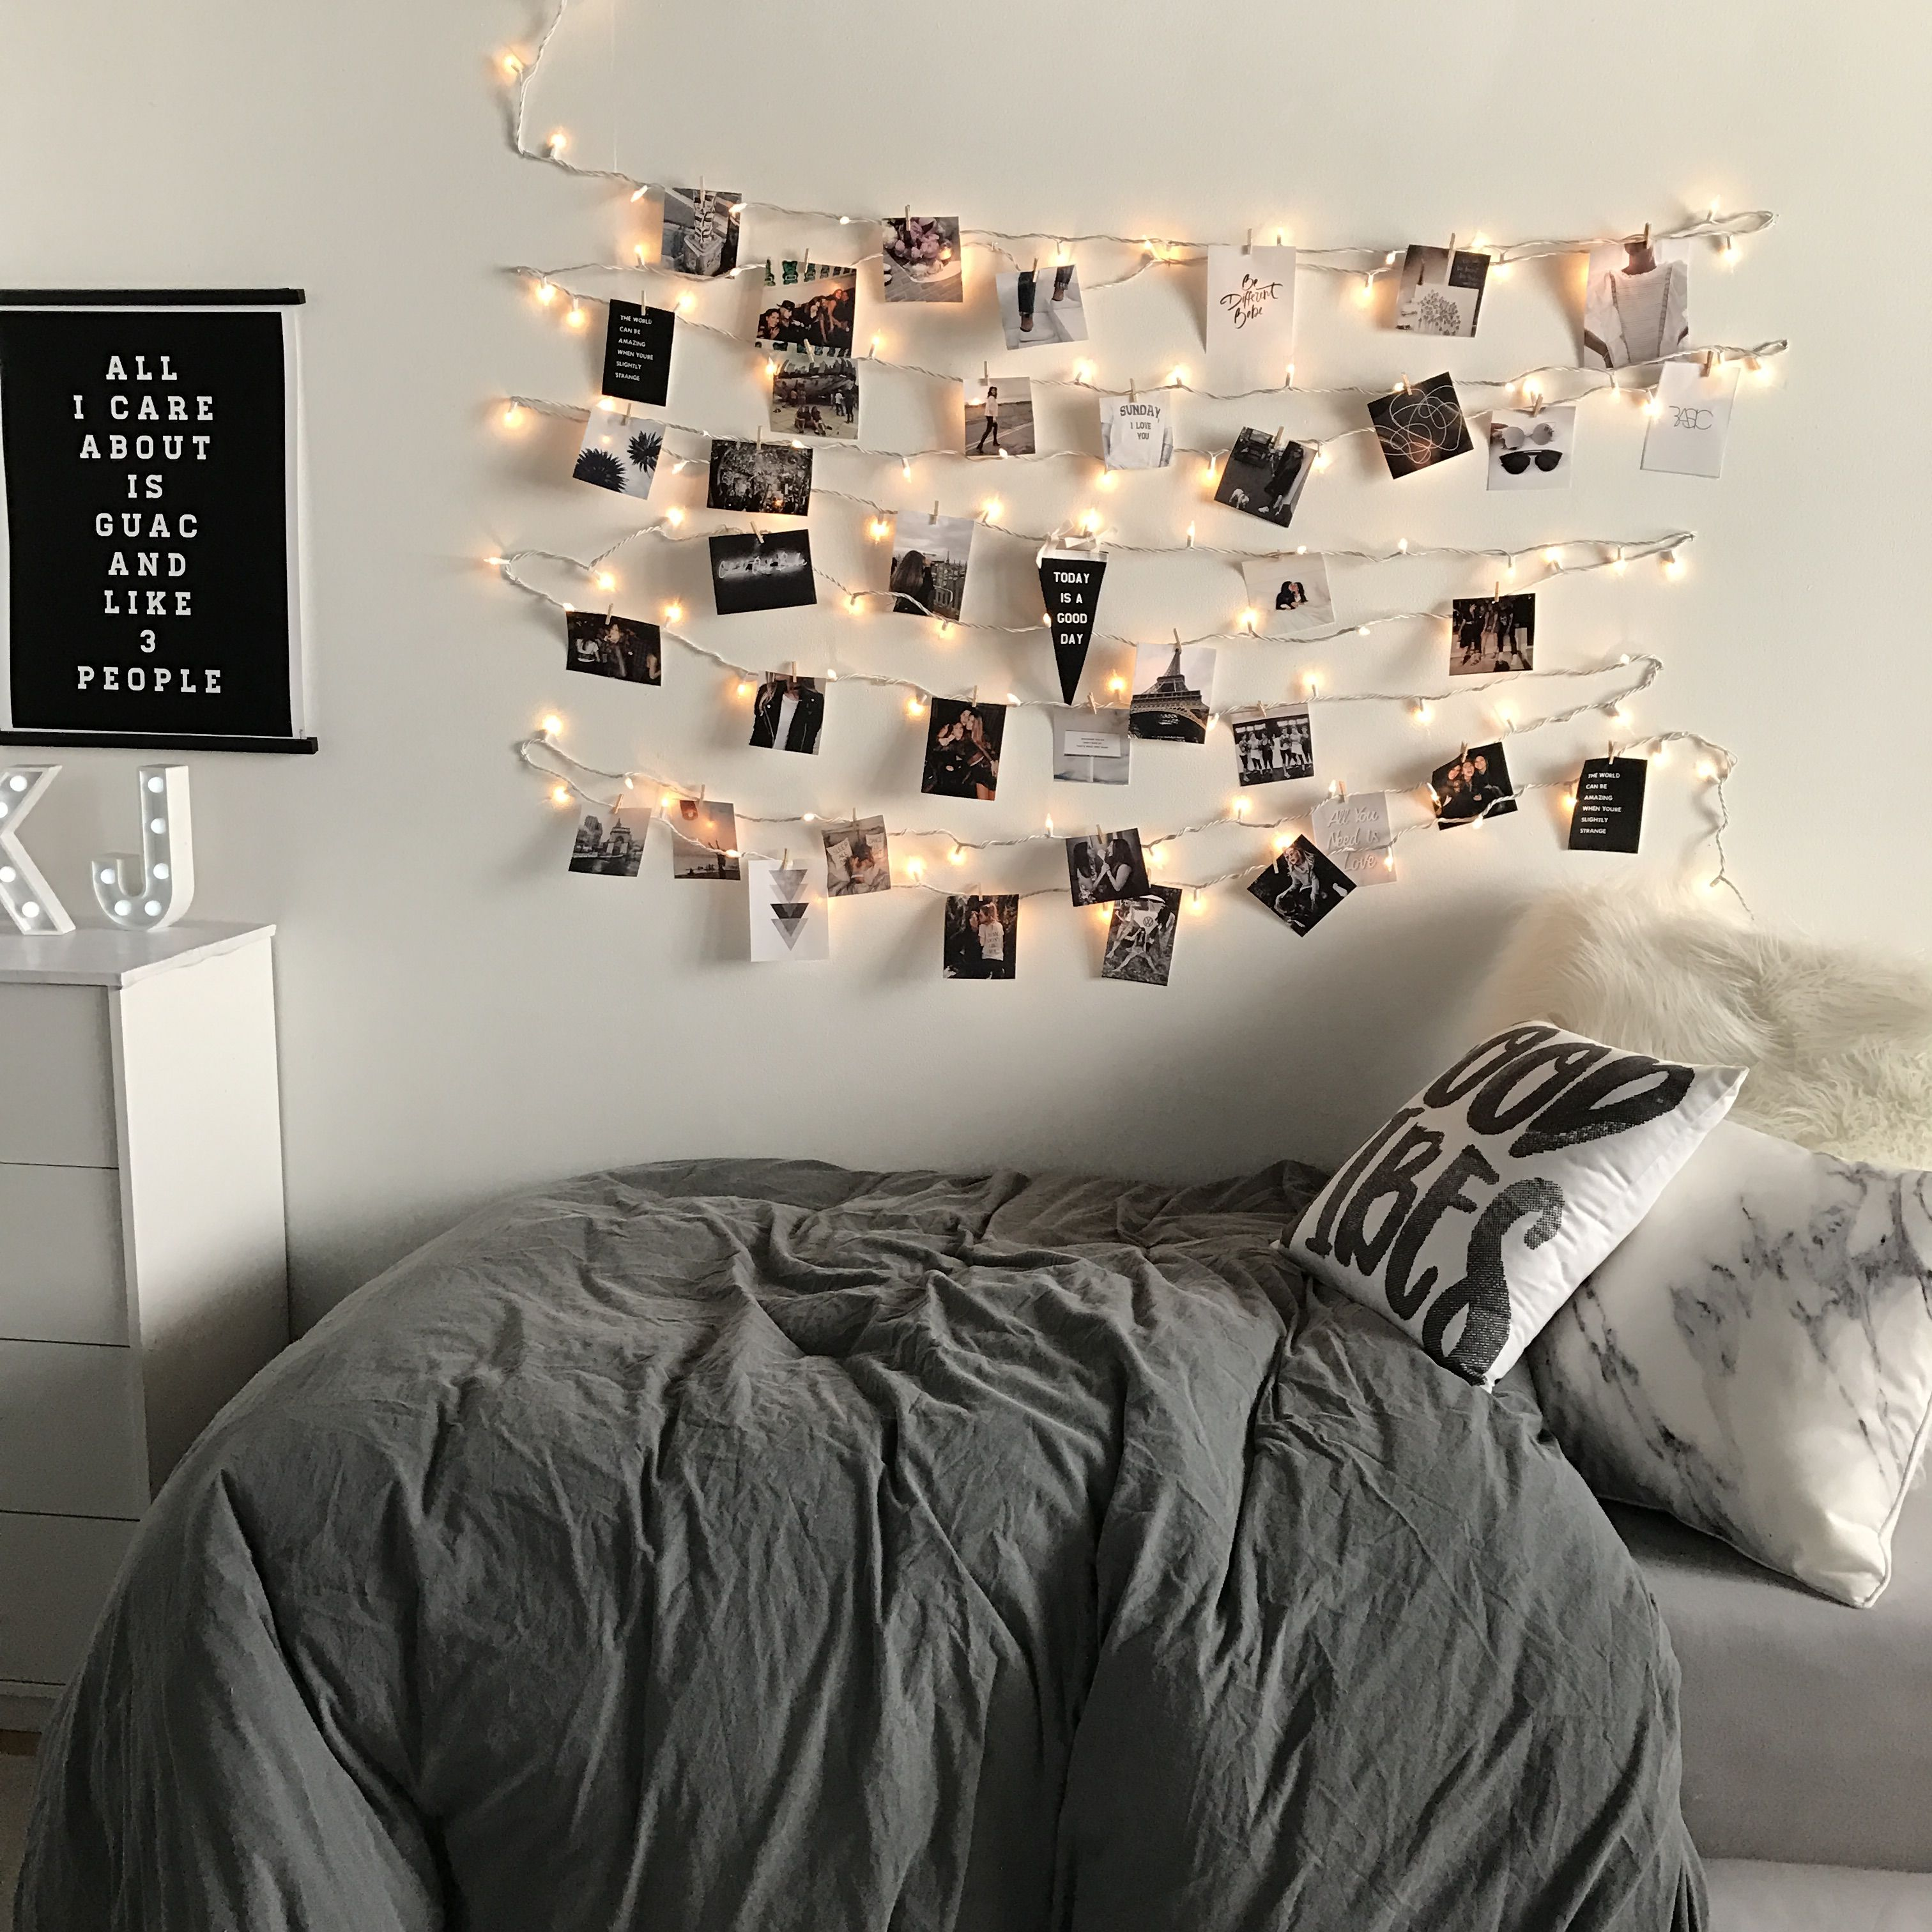 Photo Decoration In Room It S Lit Shop Dormify With 20 Off Sitewide With Code